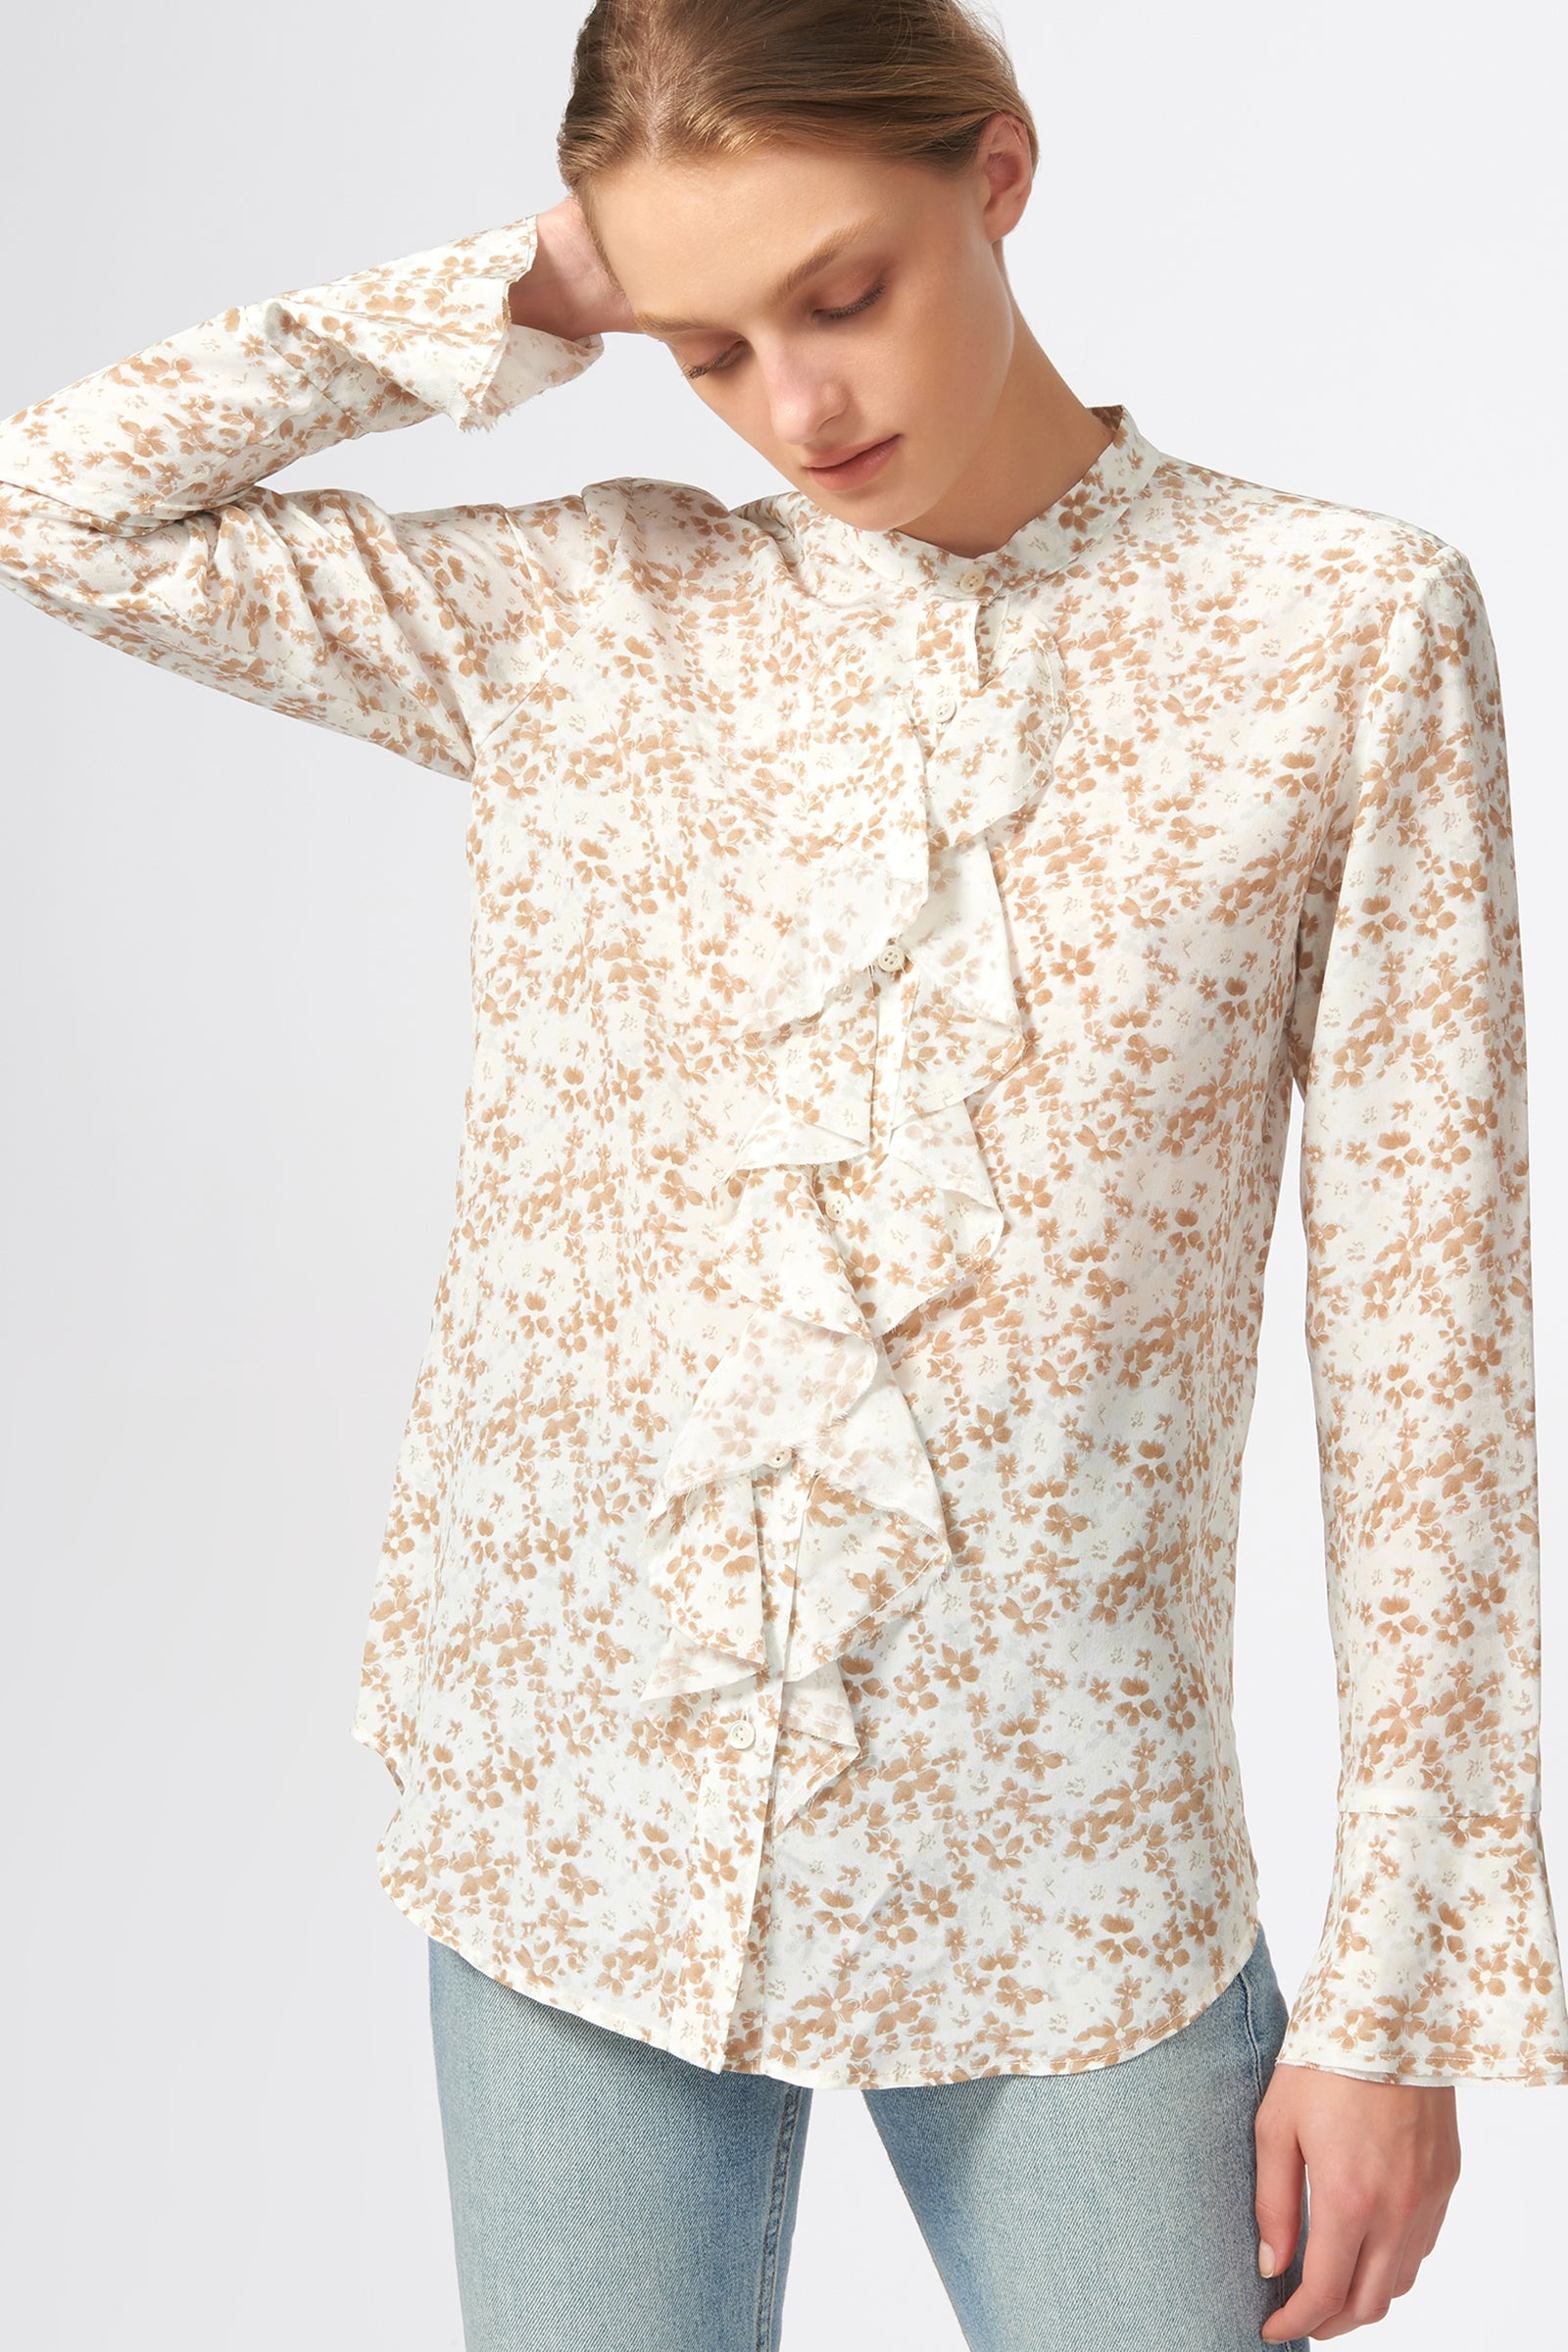 Kal Rieman Ruffle Front Blouse in Ivory Floral Print on Model Front View